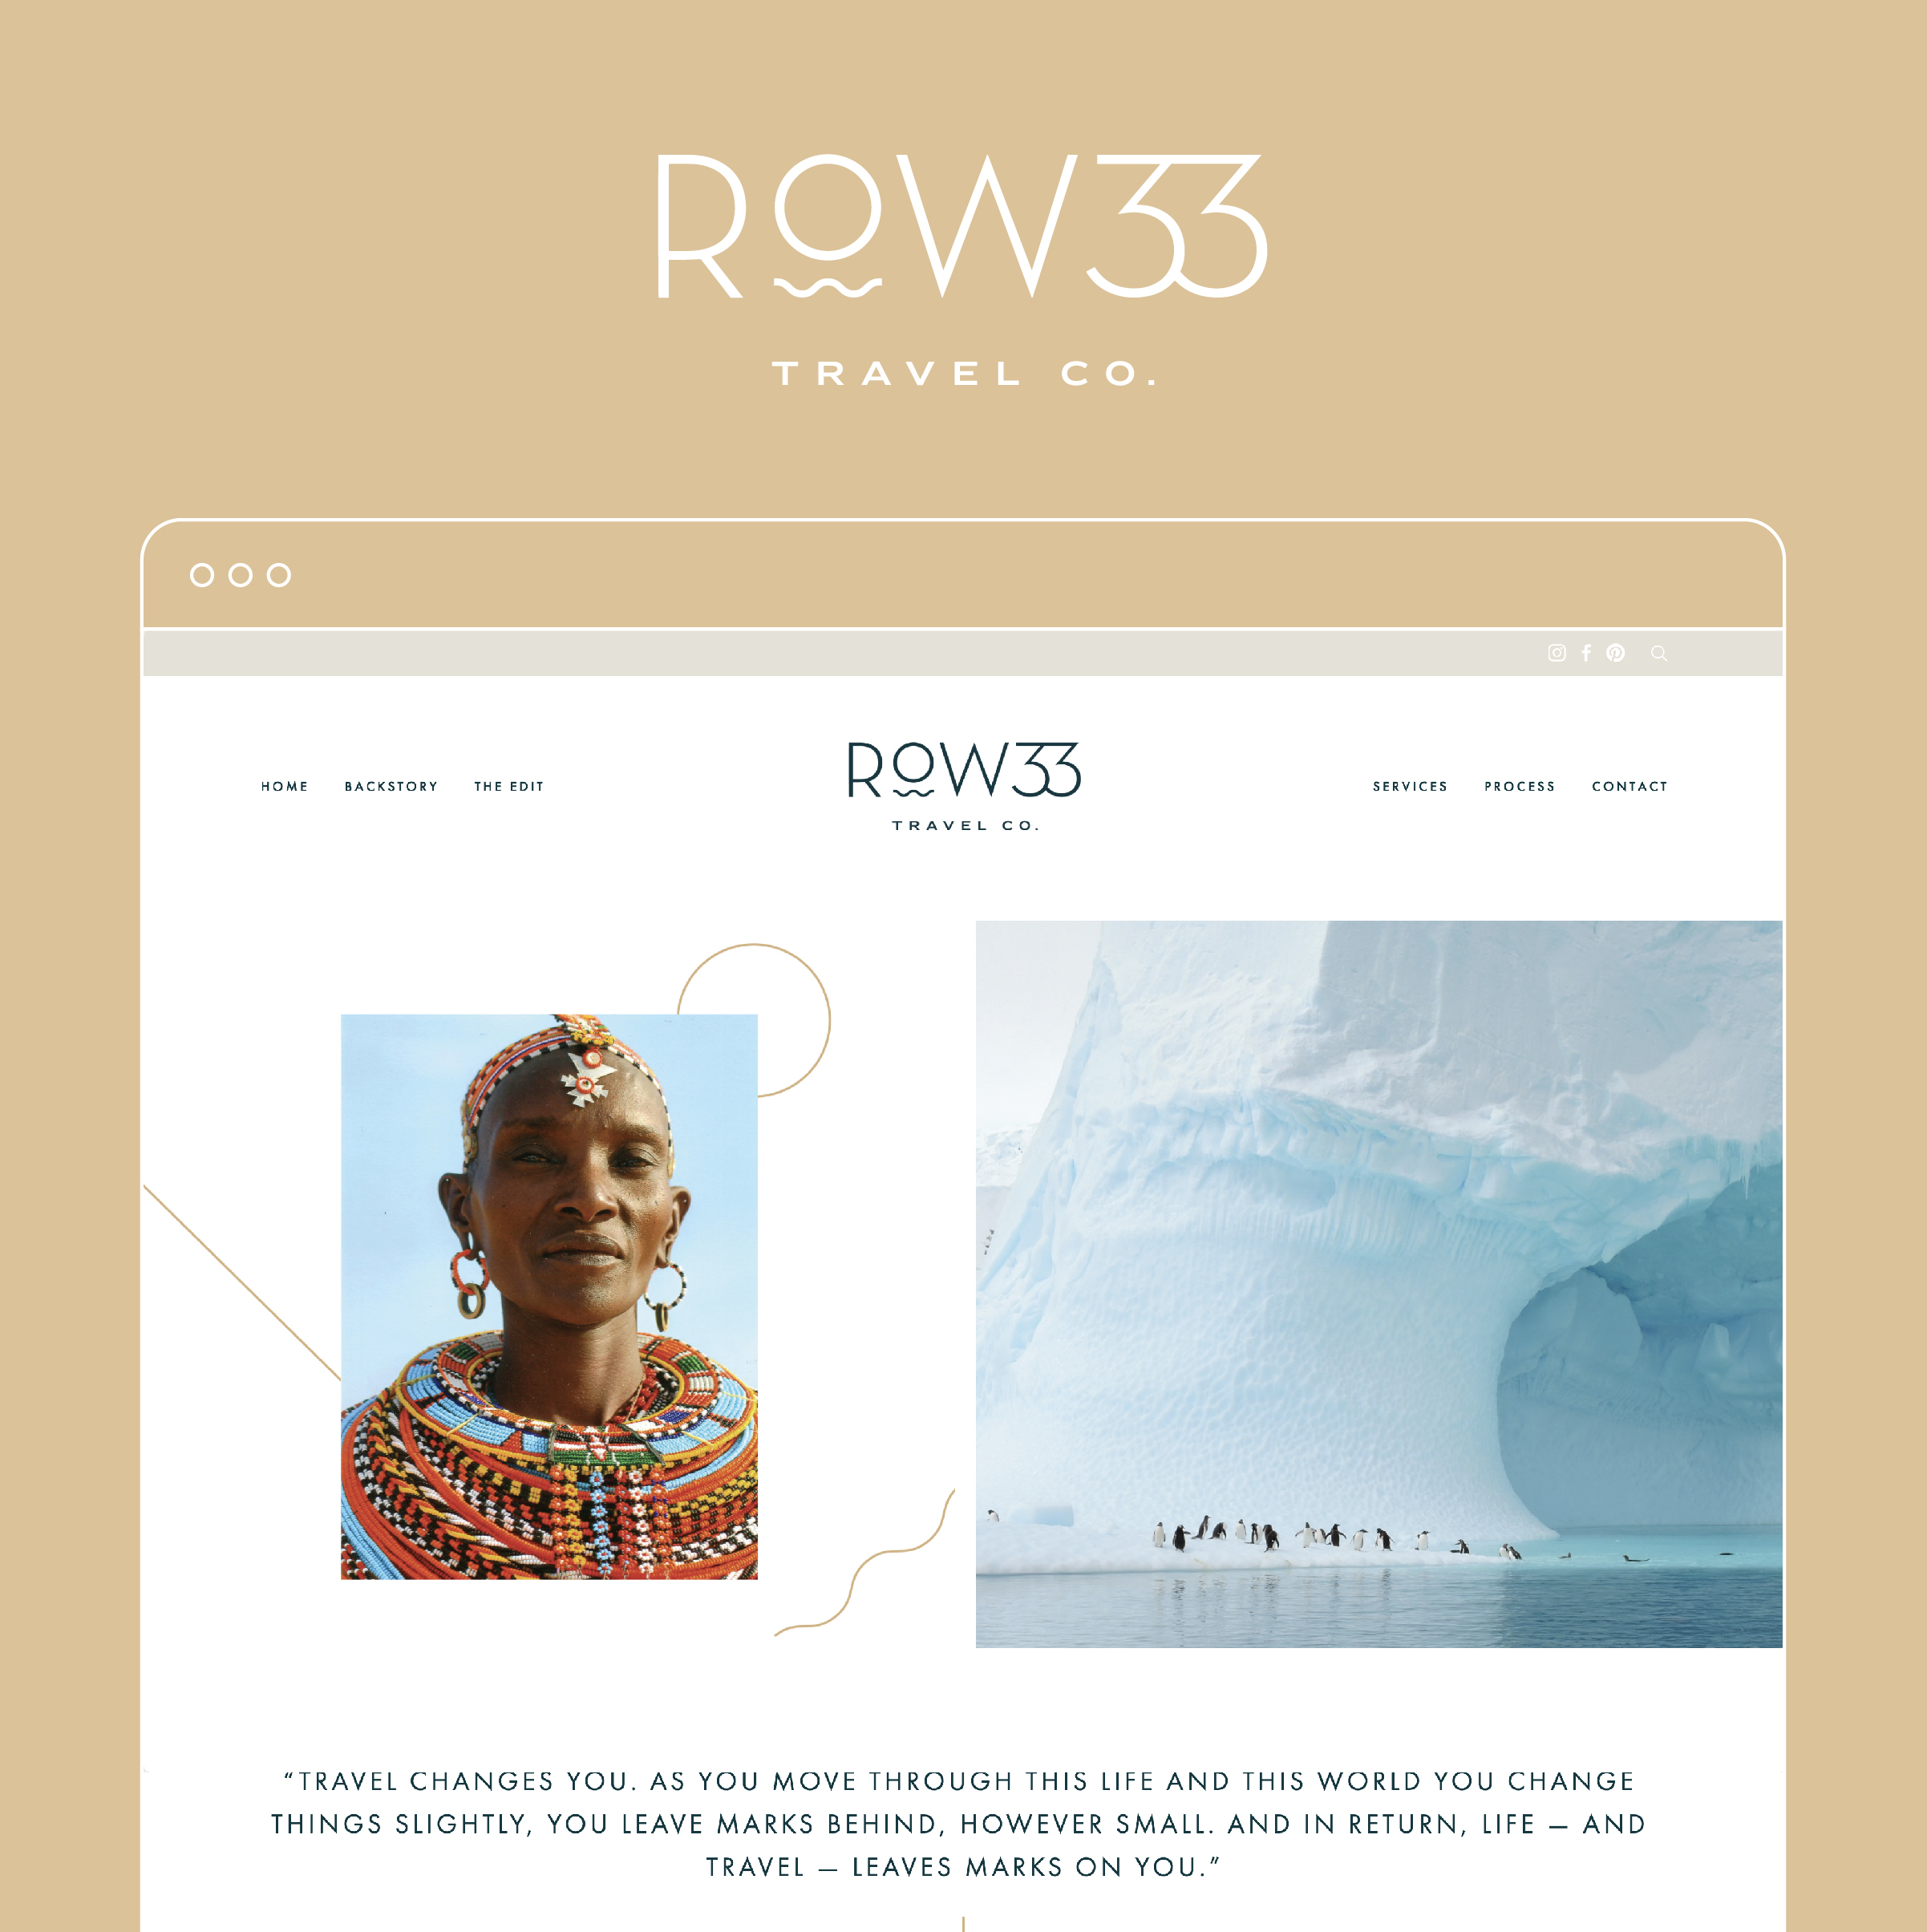 Row33TravelCo_LaunchGraphic.jpg